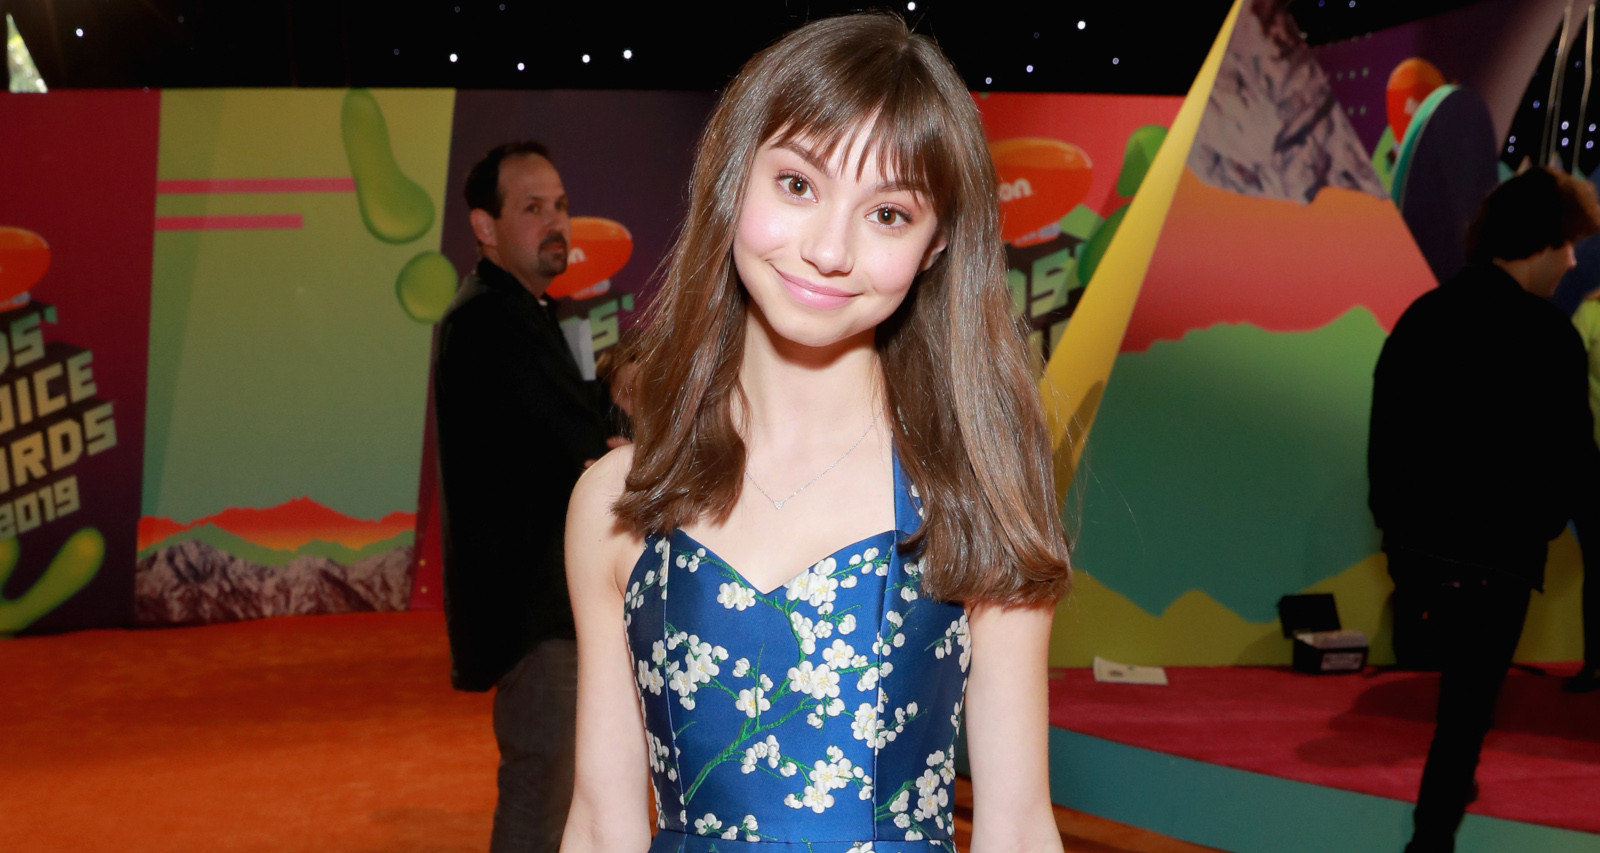 Lauren Lindsey Donzis Wiki, Parents, No Good Nick, Liv and Maddie, Facts To Know